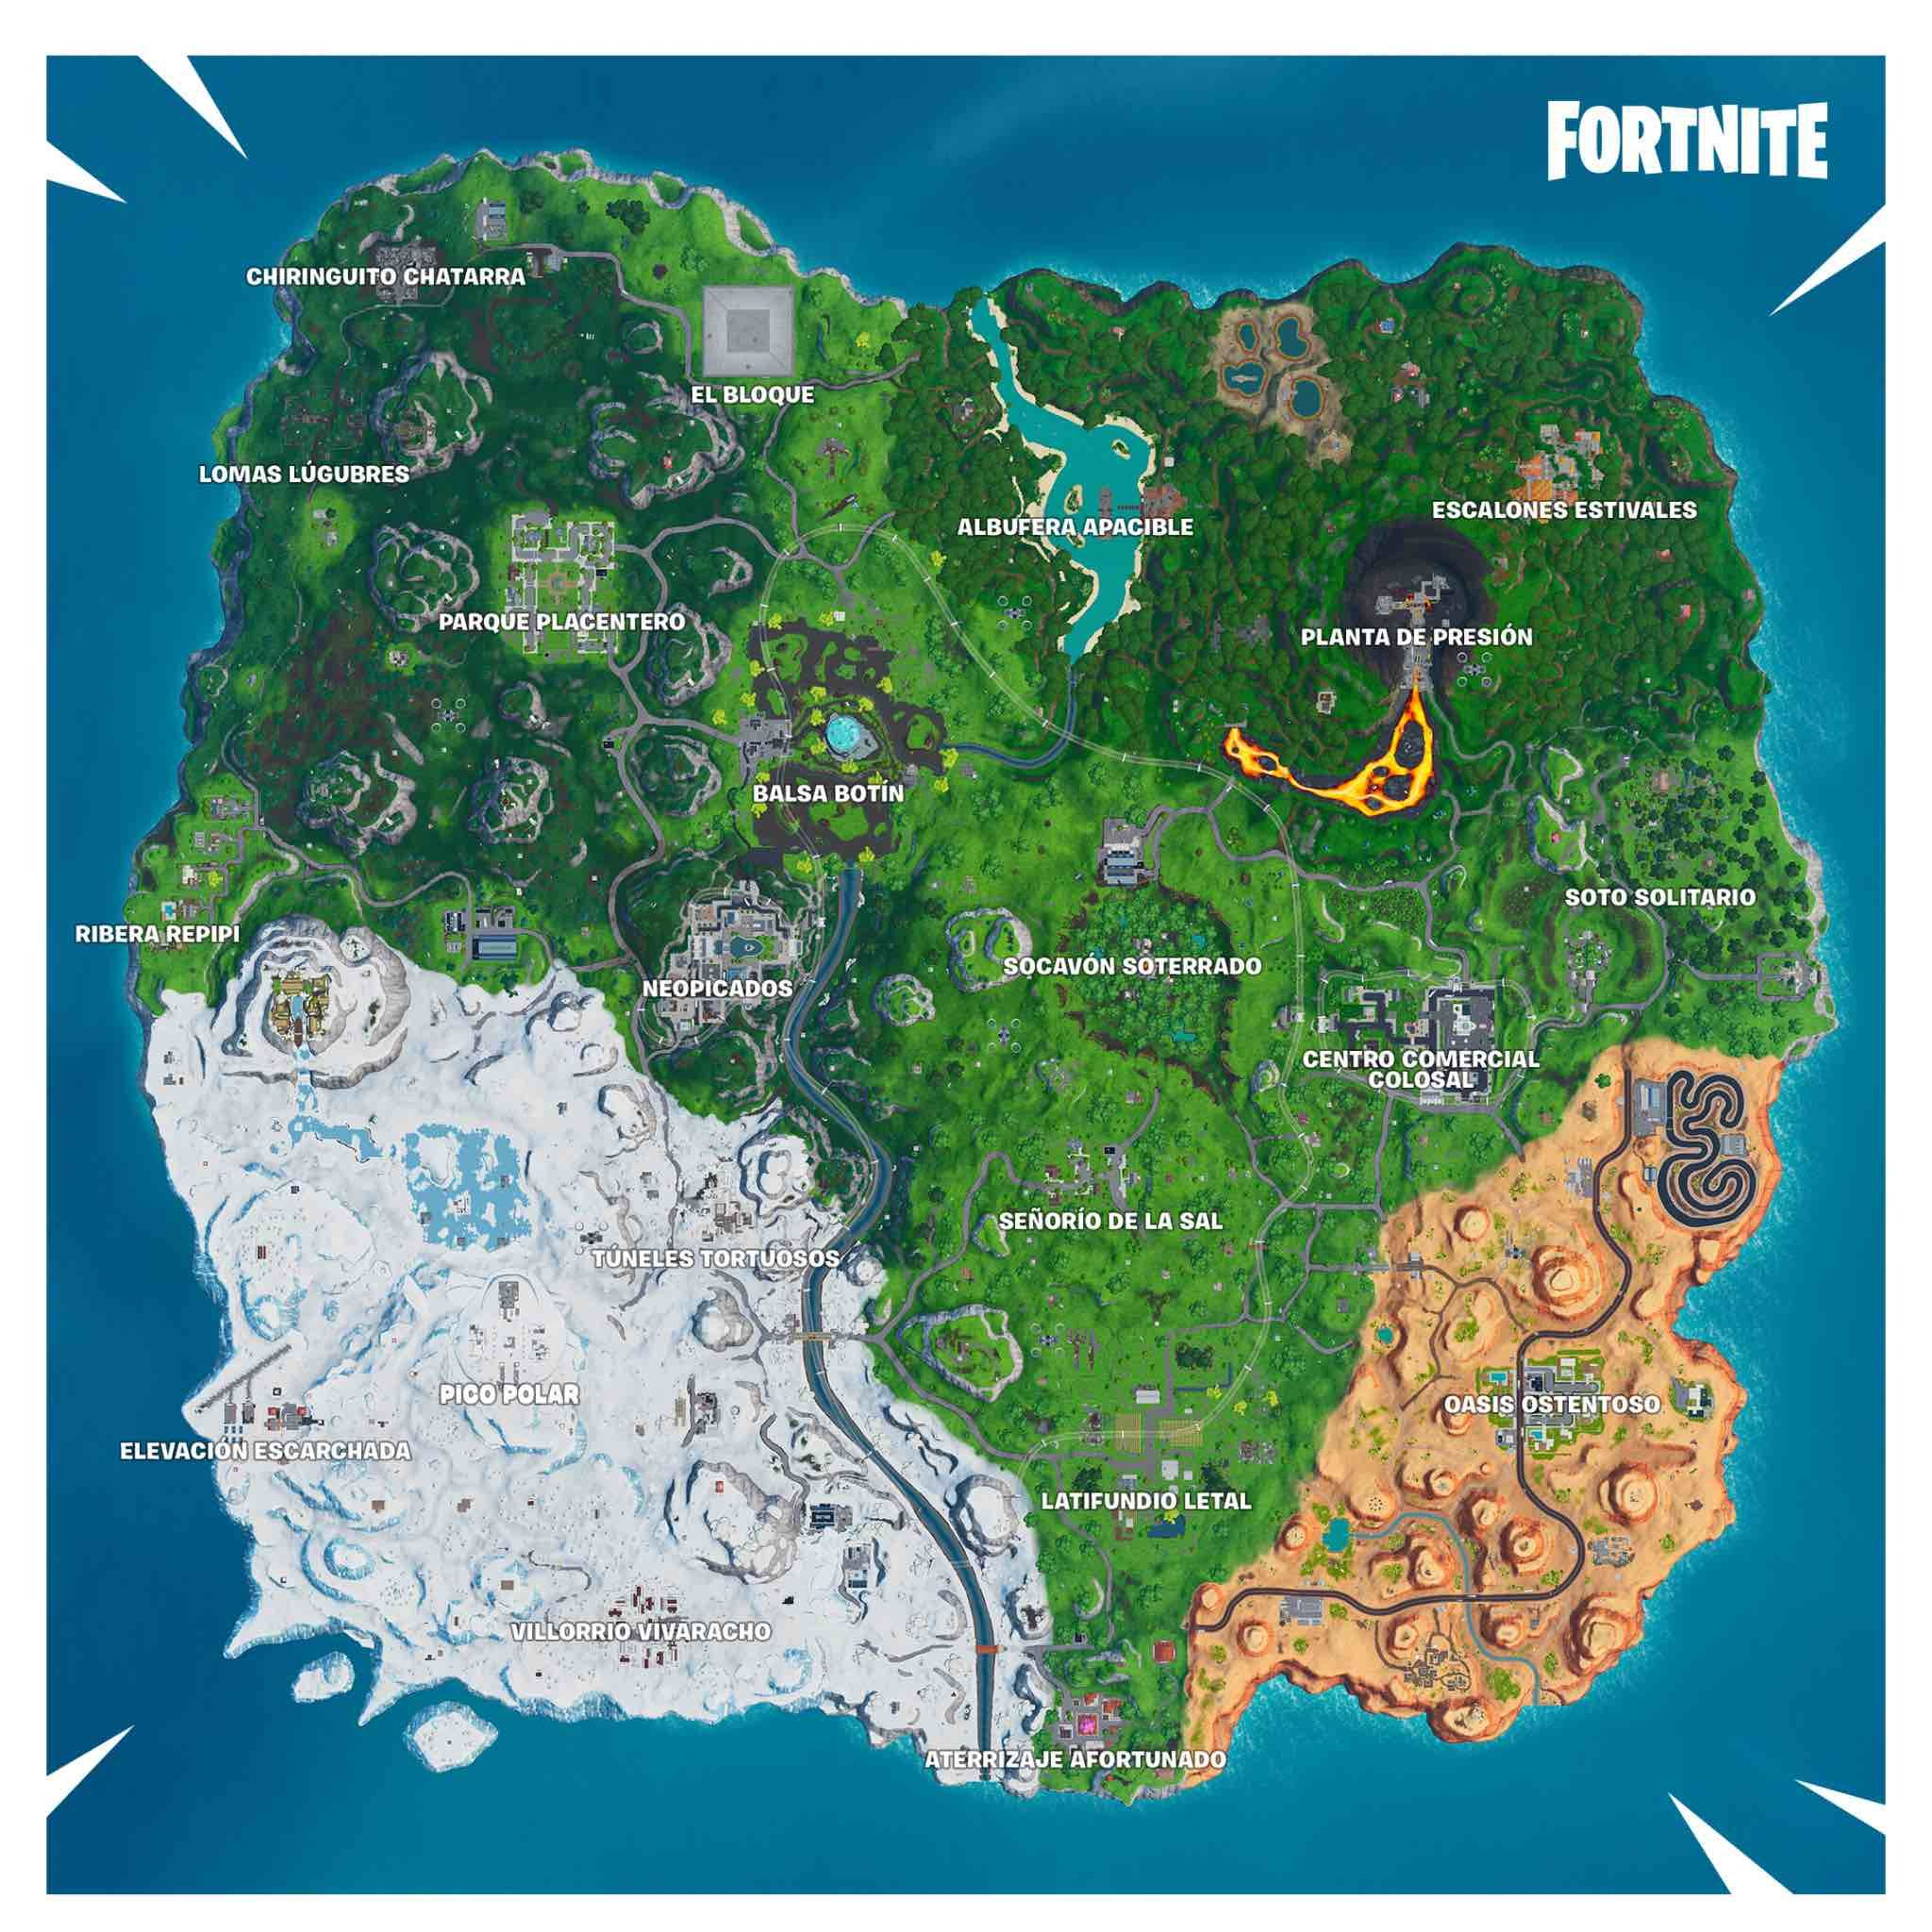 Cambios En El Mapa De Fortnite Temporada 9 Fortnite Temporadas Mapas